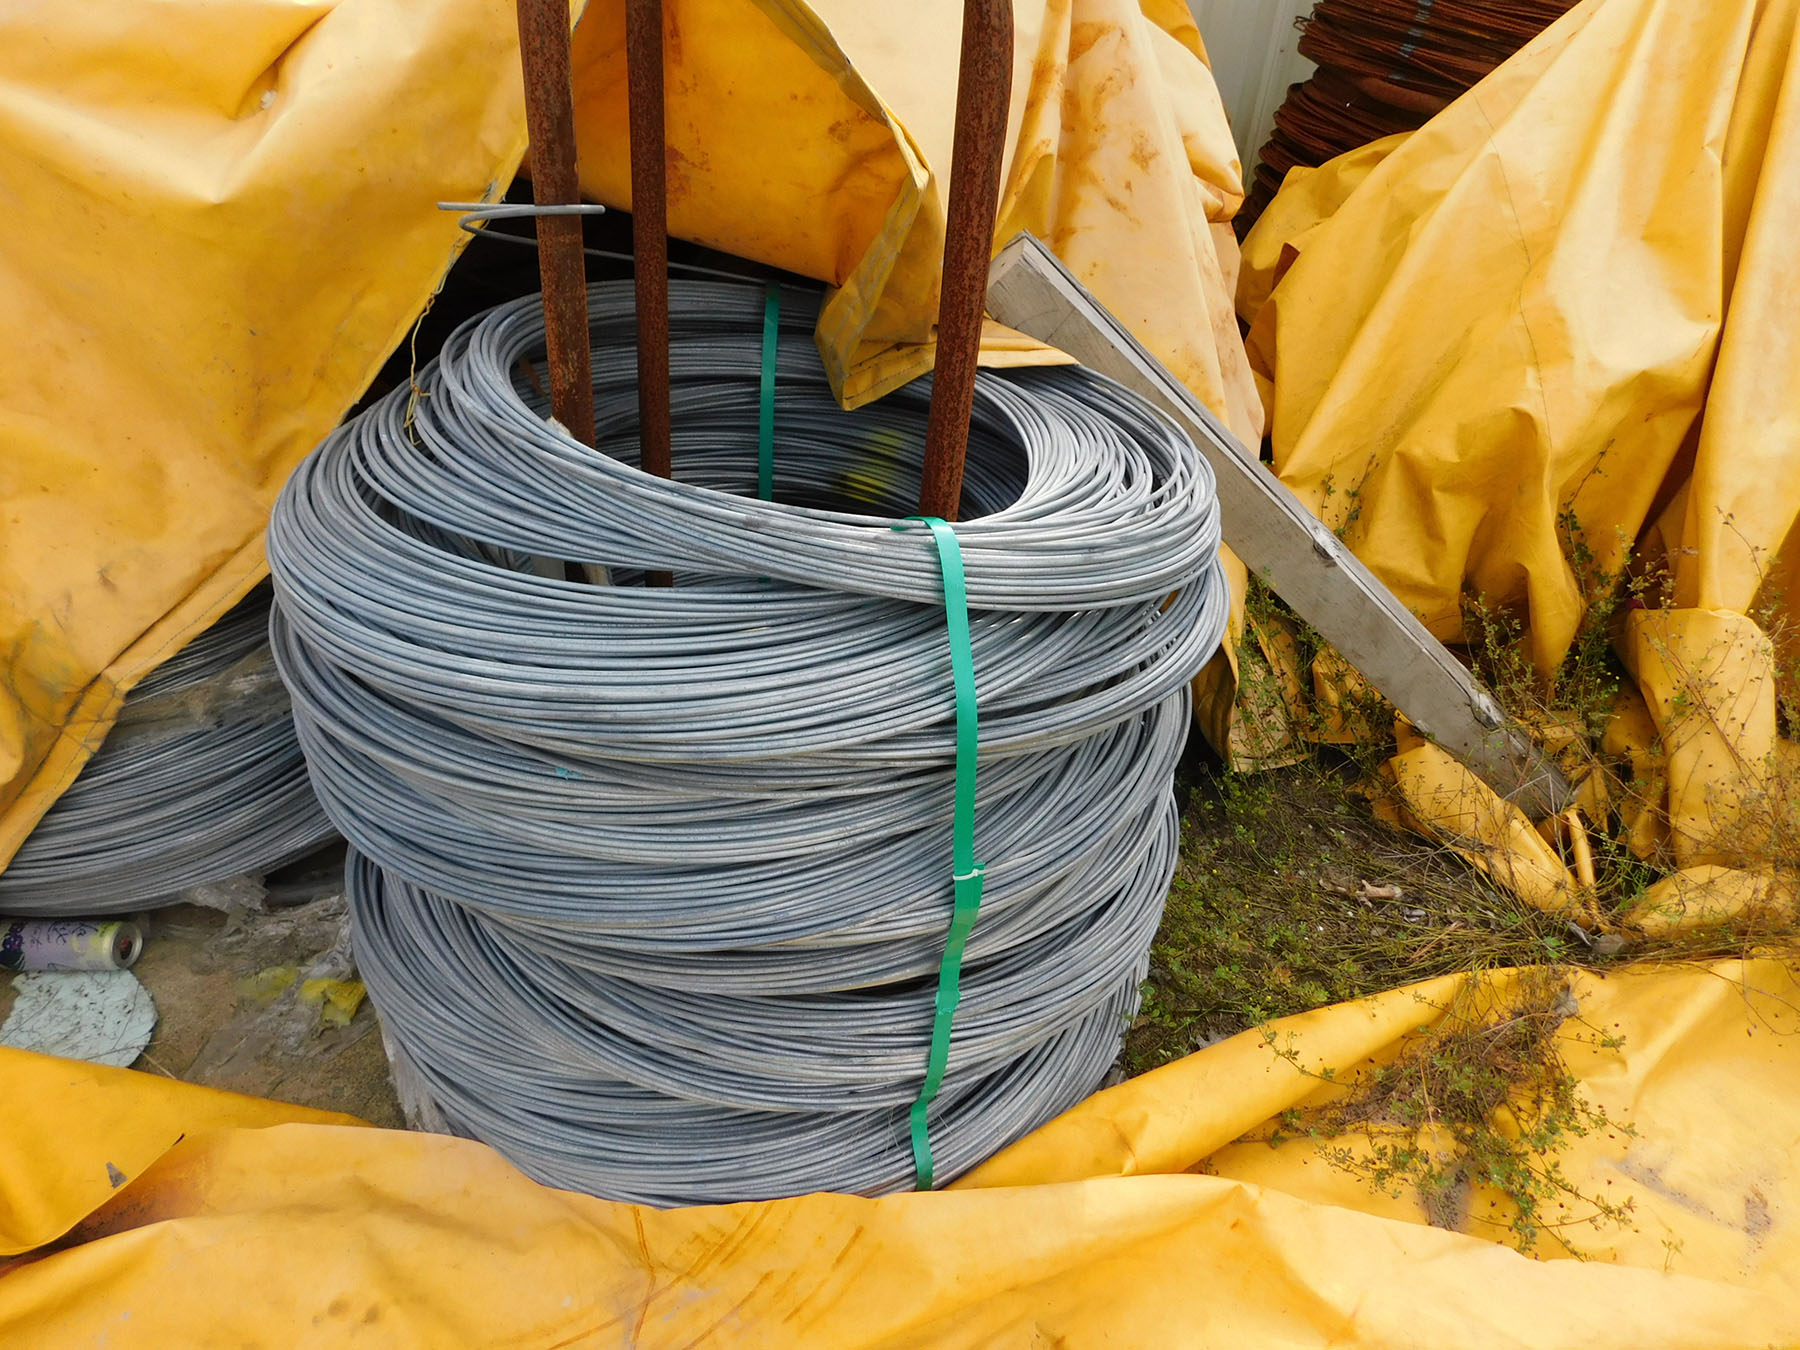 Lot 2058 - LOT OF MISC. GAUGED GALVANIZED WIRE & RACKS